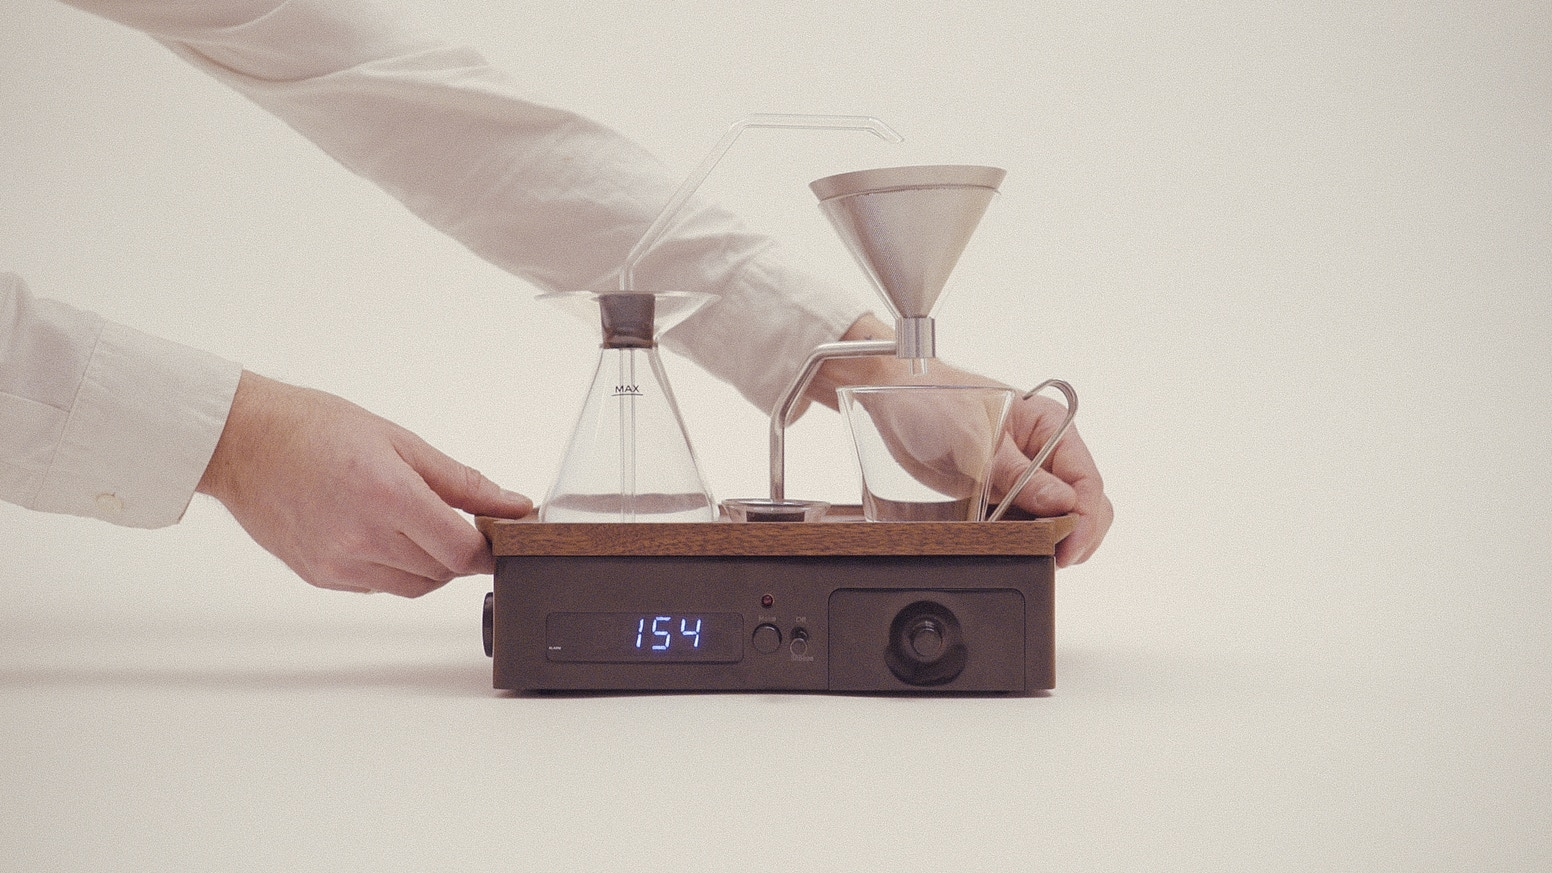 A beautifully designed alarm clock in high-end materials, waking you with freshly brewed coffee or tea.